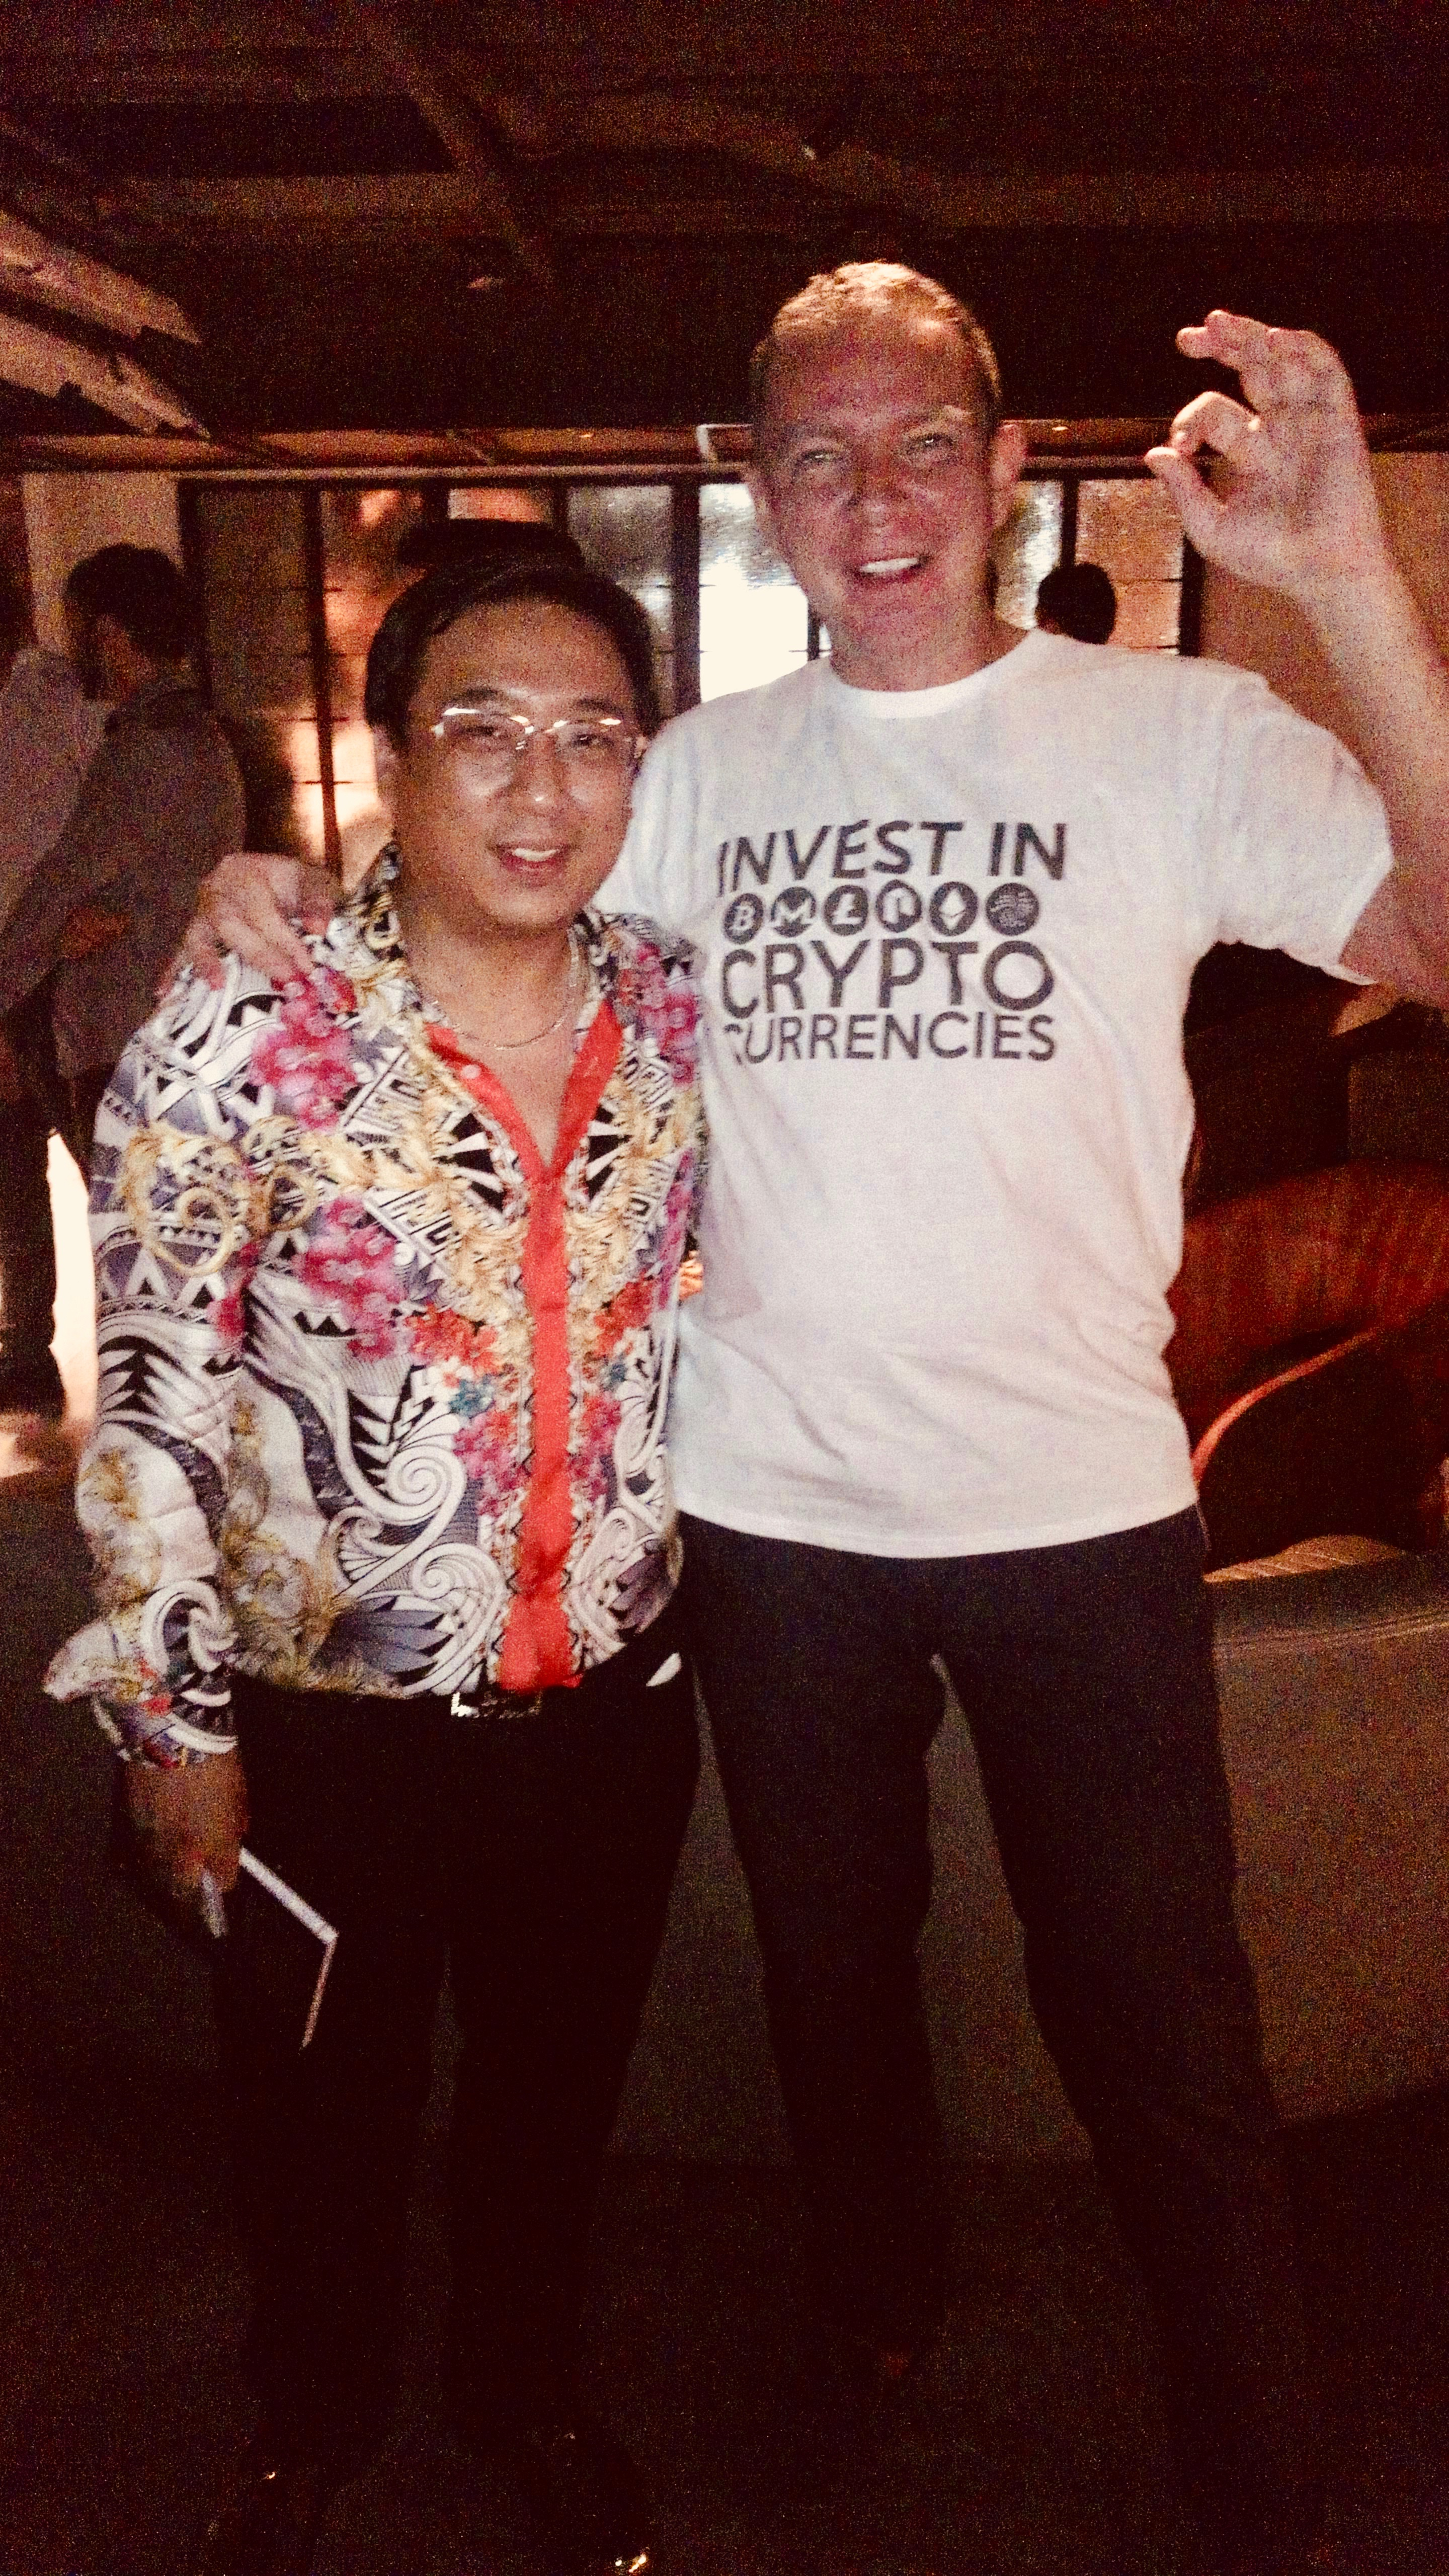 Dmitry Fedotov and James Bang of Bitcoin Association Hong Kong